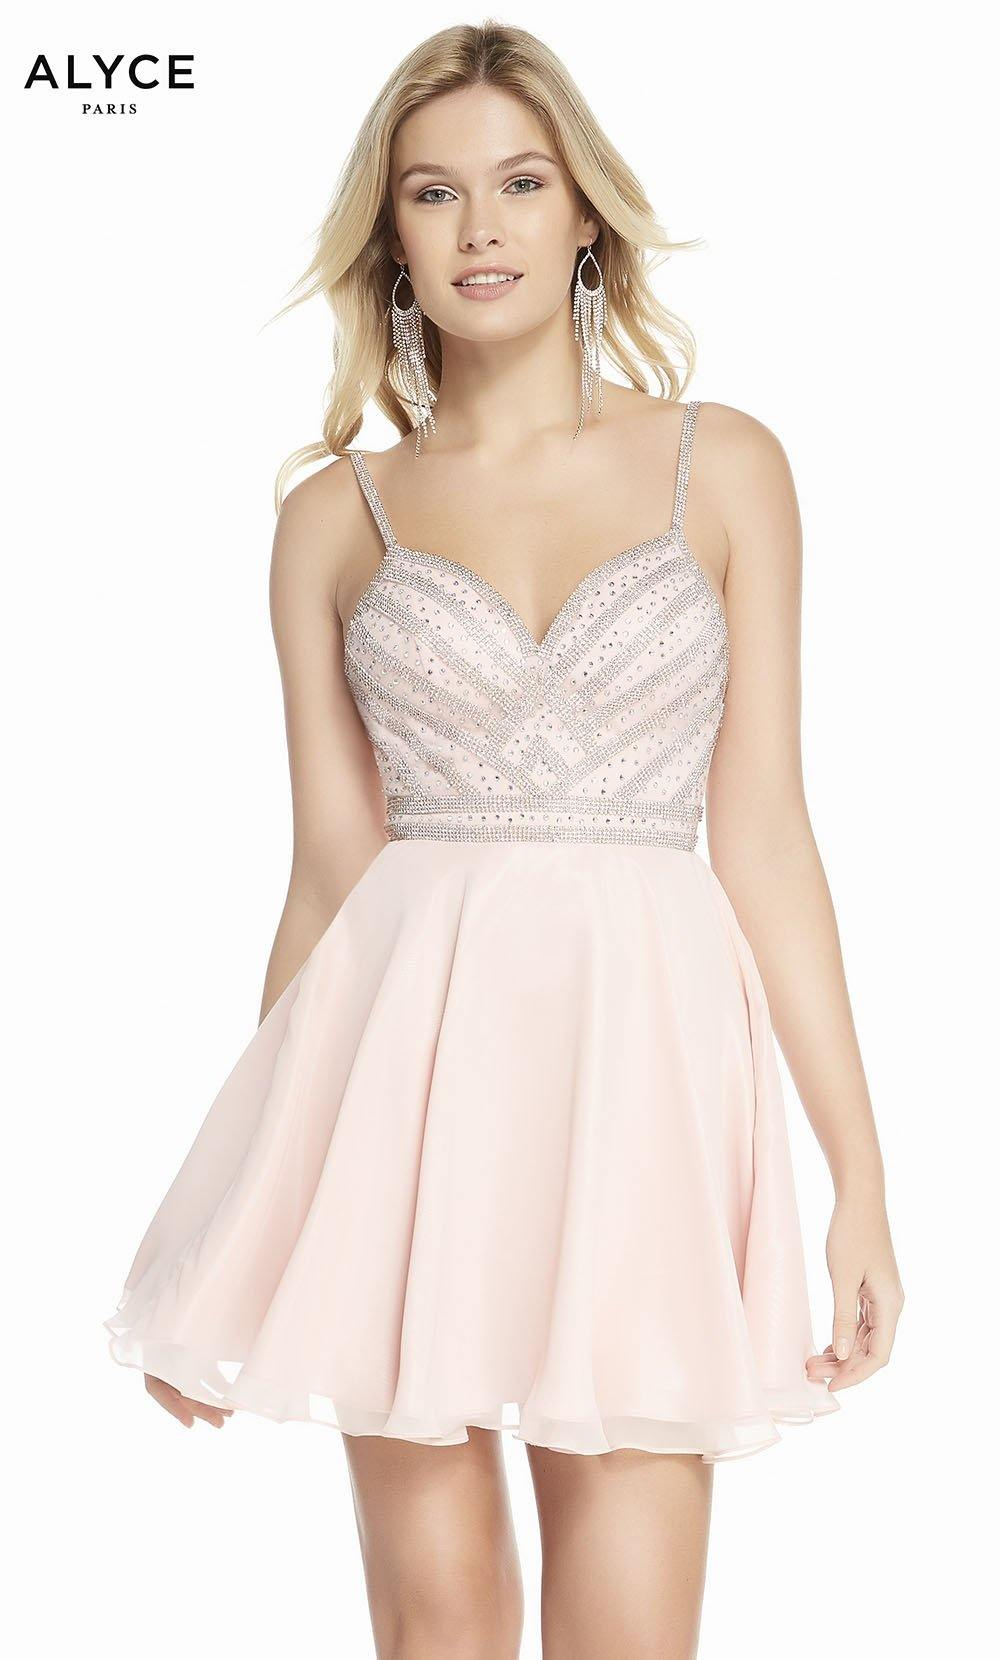 Alyce 4150 short fit and flare chiffon dress with a sweetheart neckline and beaded bodice